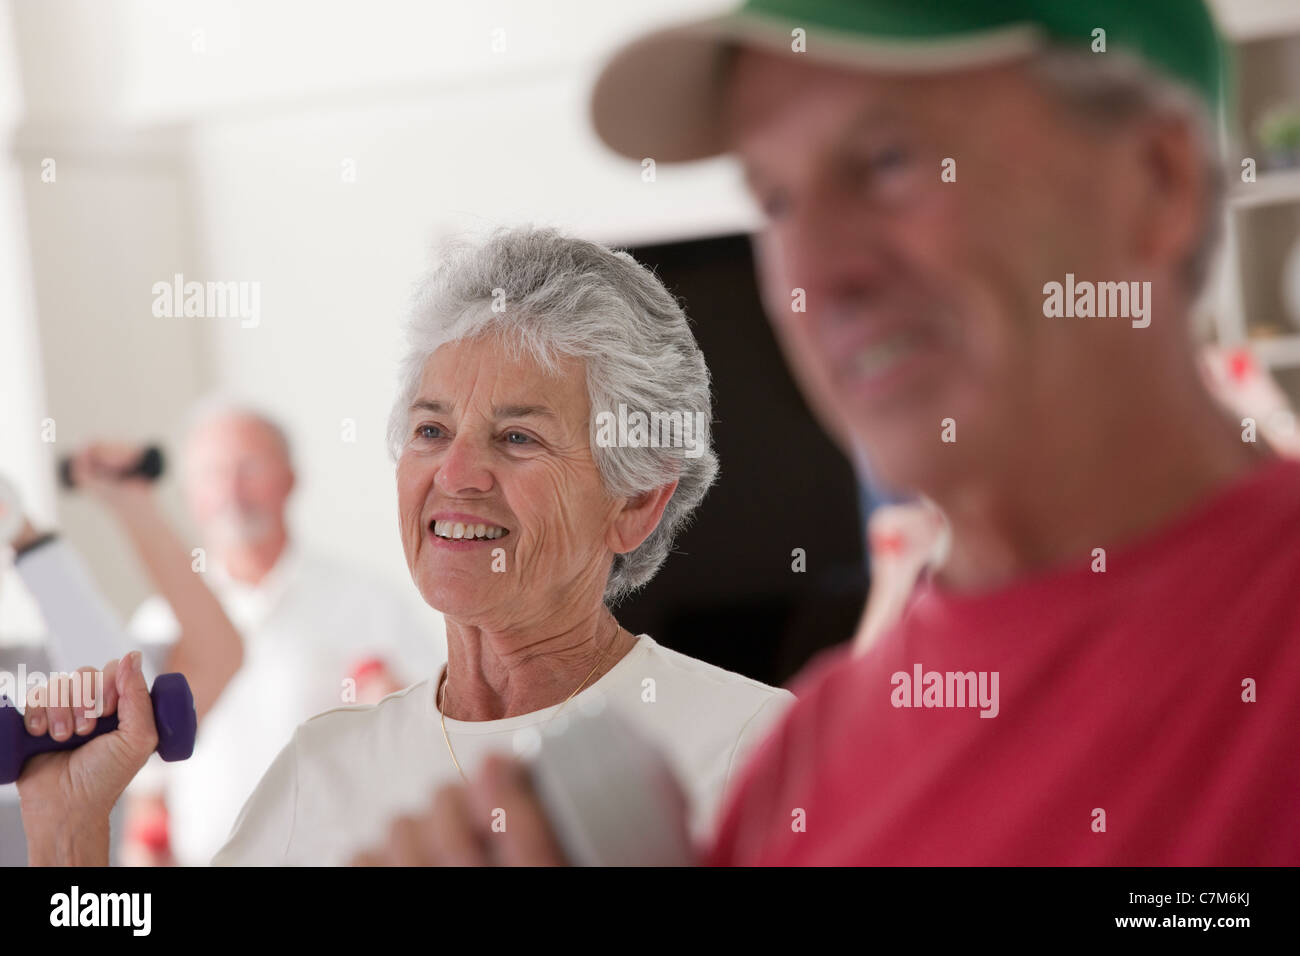 Seniors exercising with dumbbells in a health club - Stock Image